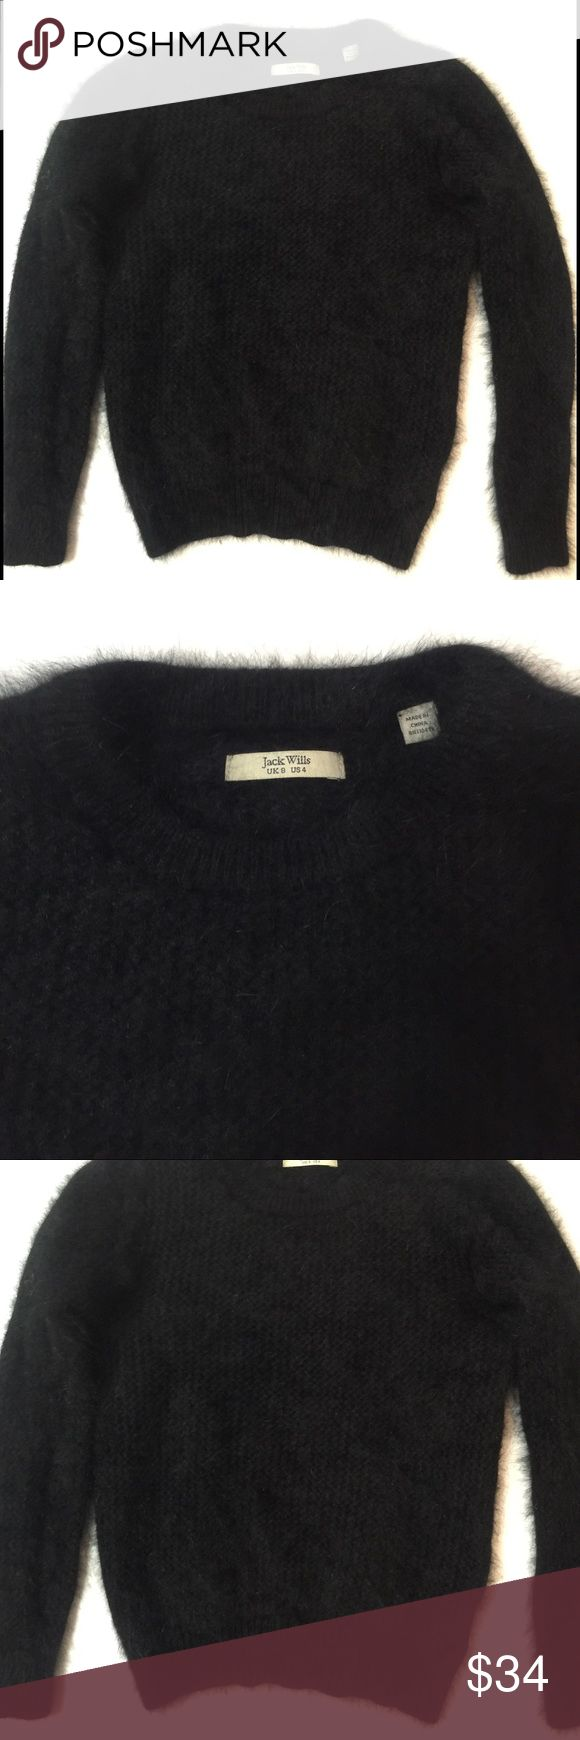 Jack Wills Soft Pulled Angora Sweater Casually chic, soft, fitted sweater. This isn't a wool sweater, but instead an angora and polyamide combo. This can be paired with heels or high boots with jeans or short leather skirt.                                                                         🌟CONDITION: Excellent, no visible flaws or wear, looks almost new Jack Wills Sweaters